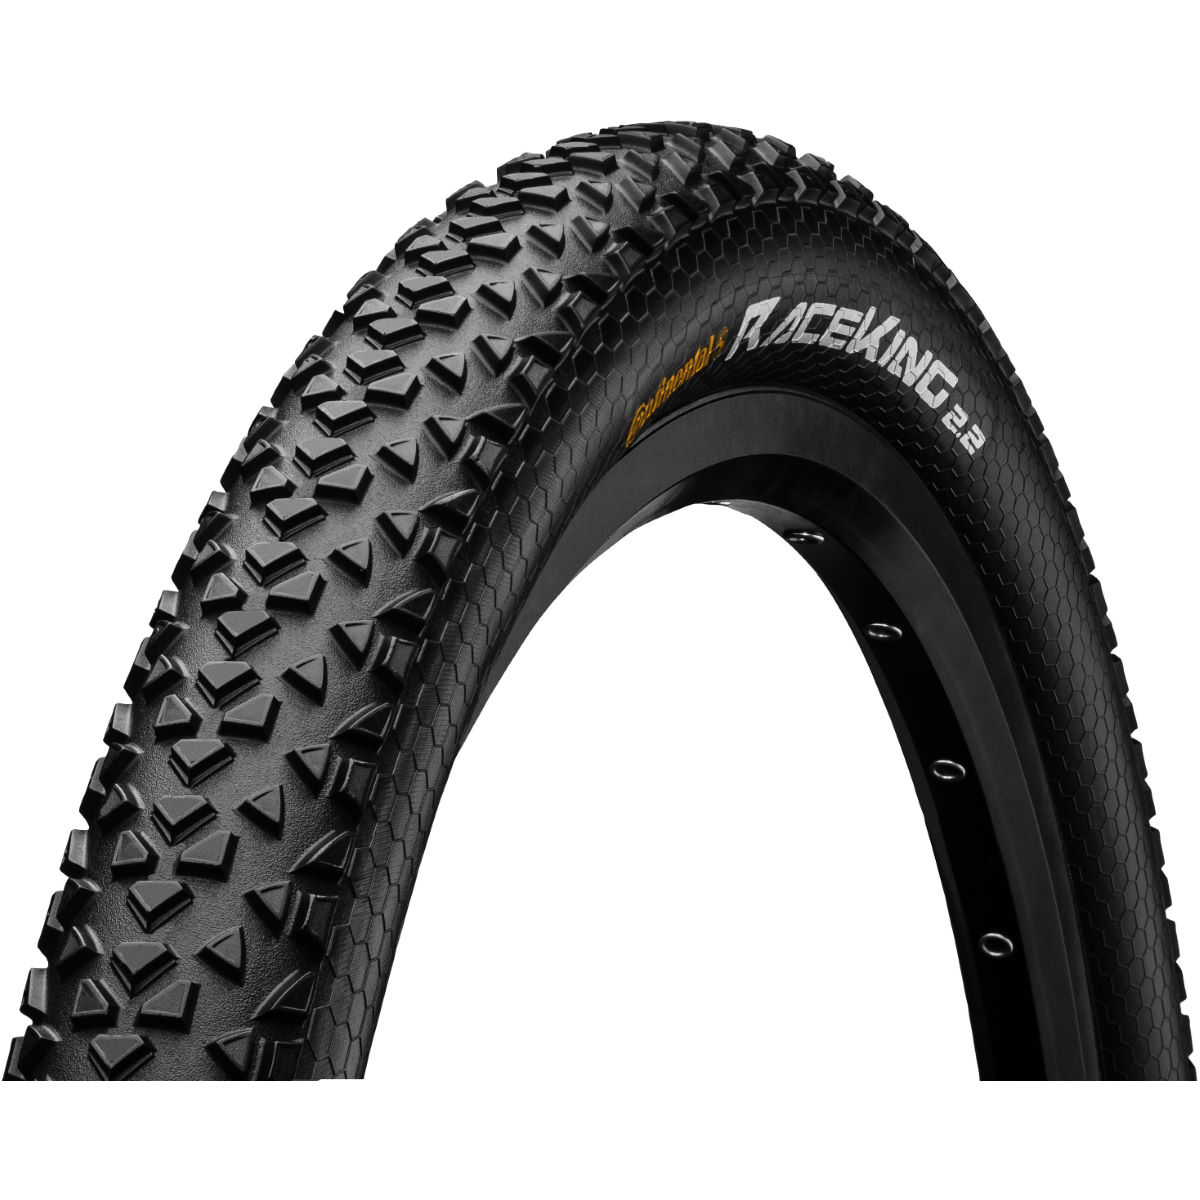 Continental Continental Race King Folding MTB Tyre - ProTection   Tyres